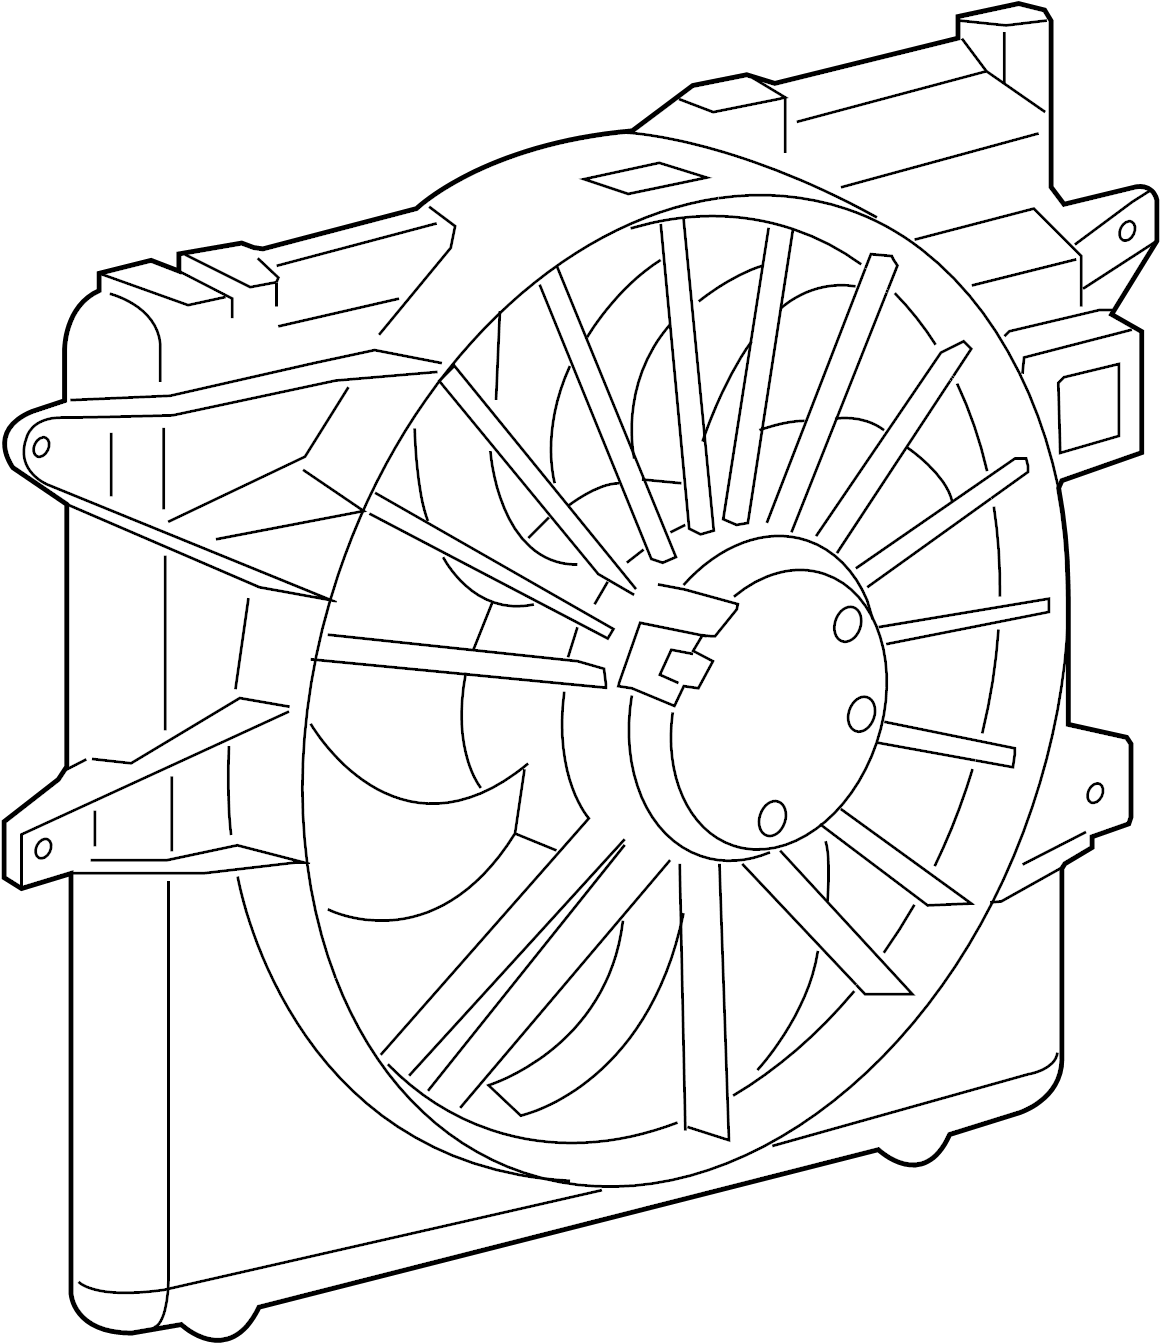 2014 ford mustang fan assy  fan module  motor and fan asy